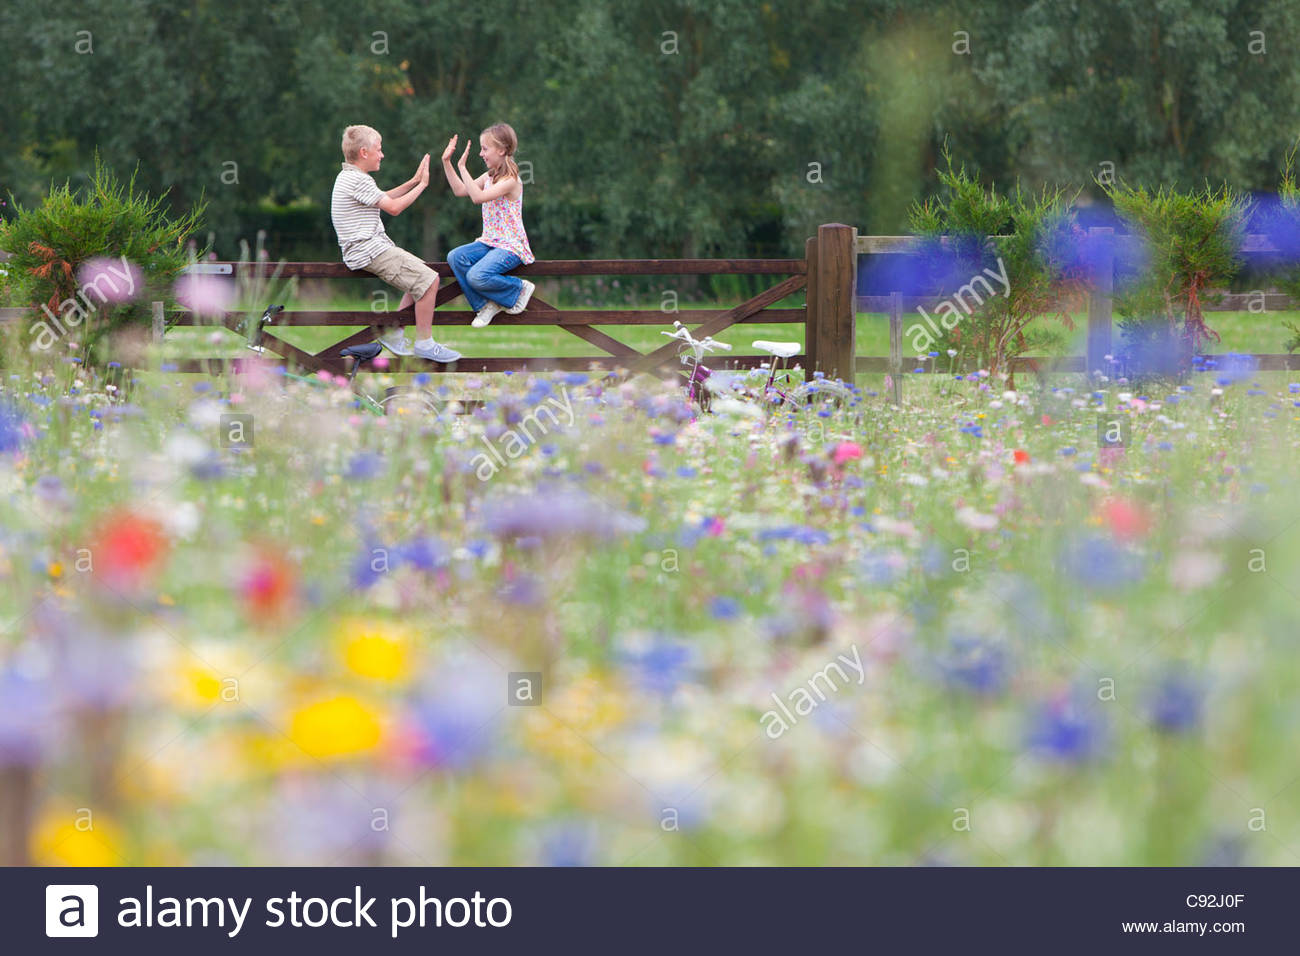 Boy and girl playing clapping game on fence in wildflower field Stock Photo